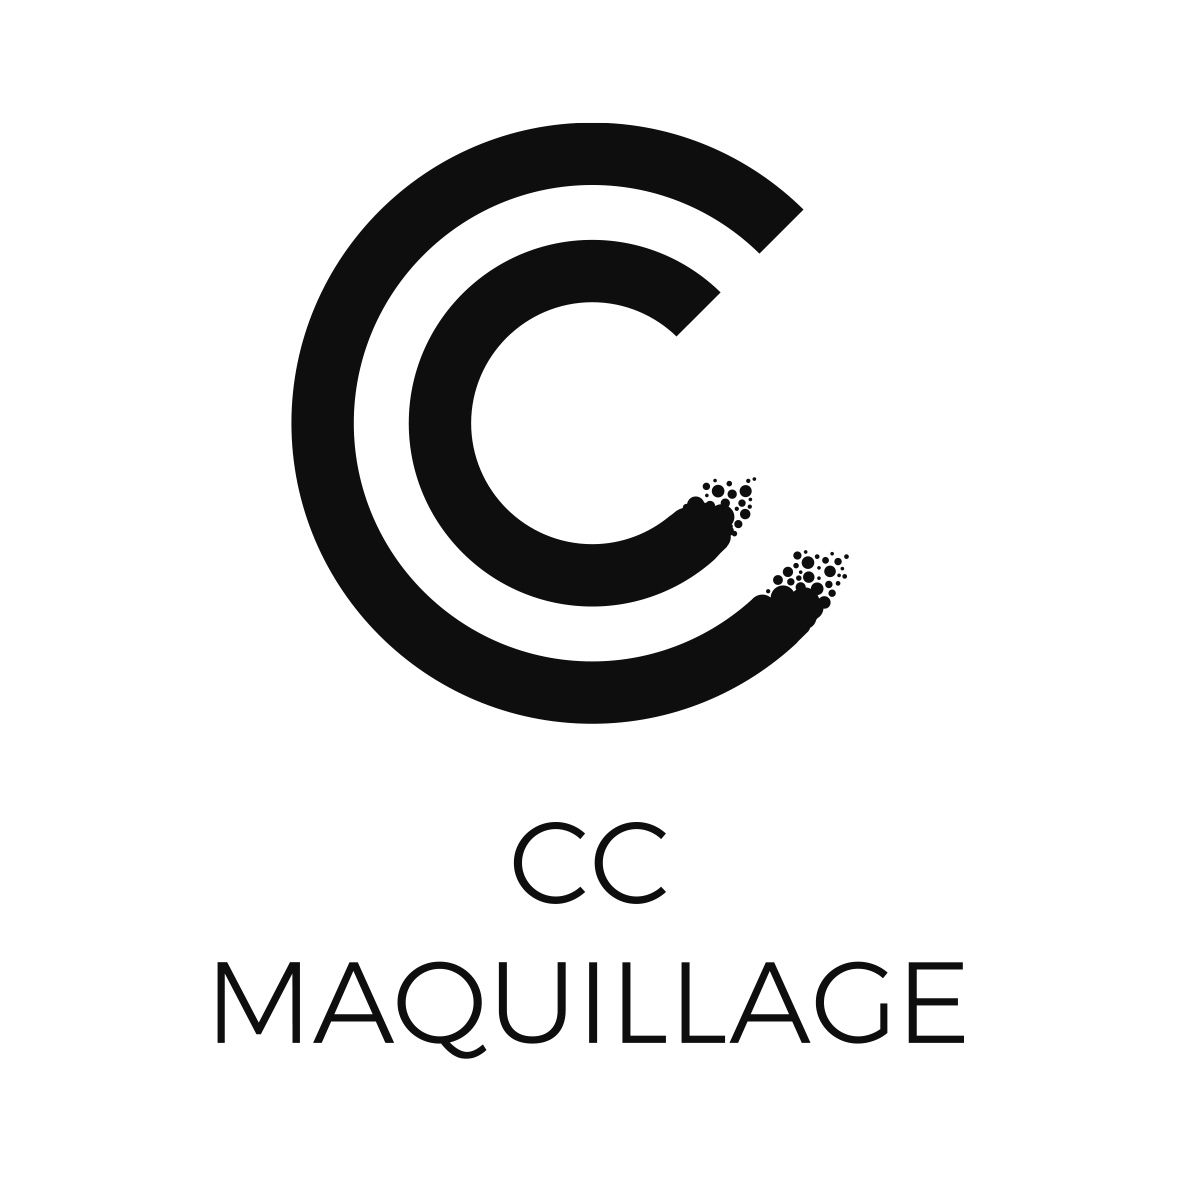 CC Maquillage le SHOP FRANCE